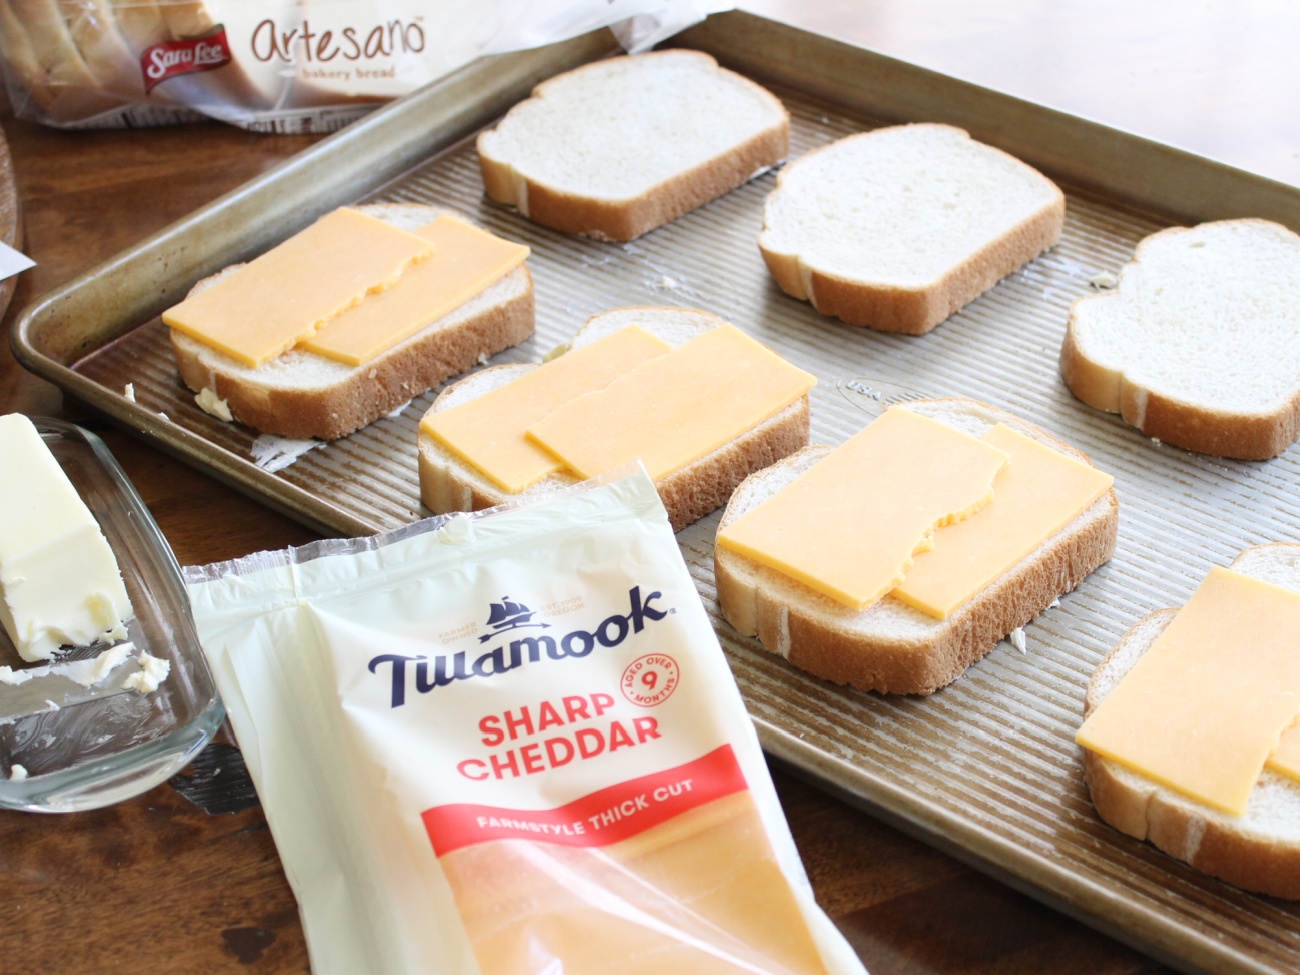 Serve Up A Delicious Grilled Cheese Sandwich With Big Savings On Tillamook Cheese At Publix on I Heart Publix